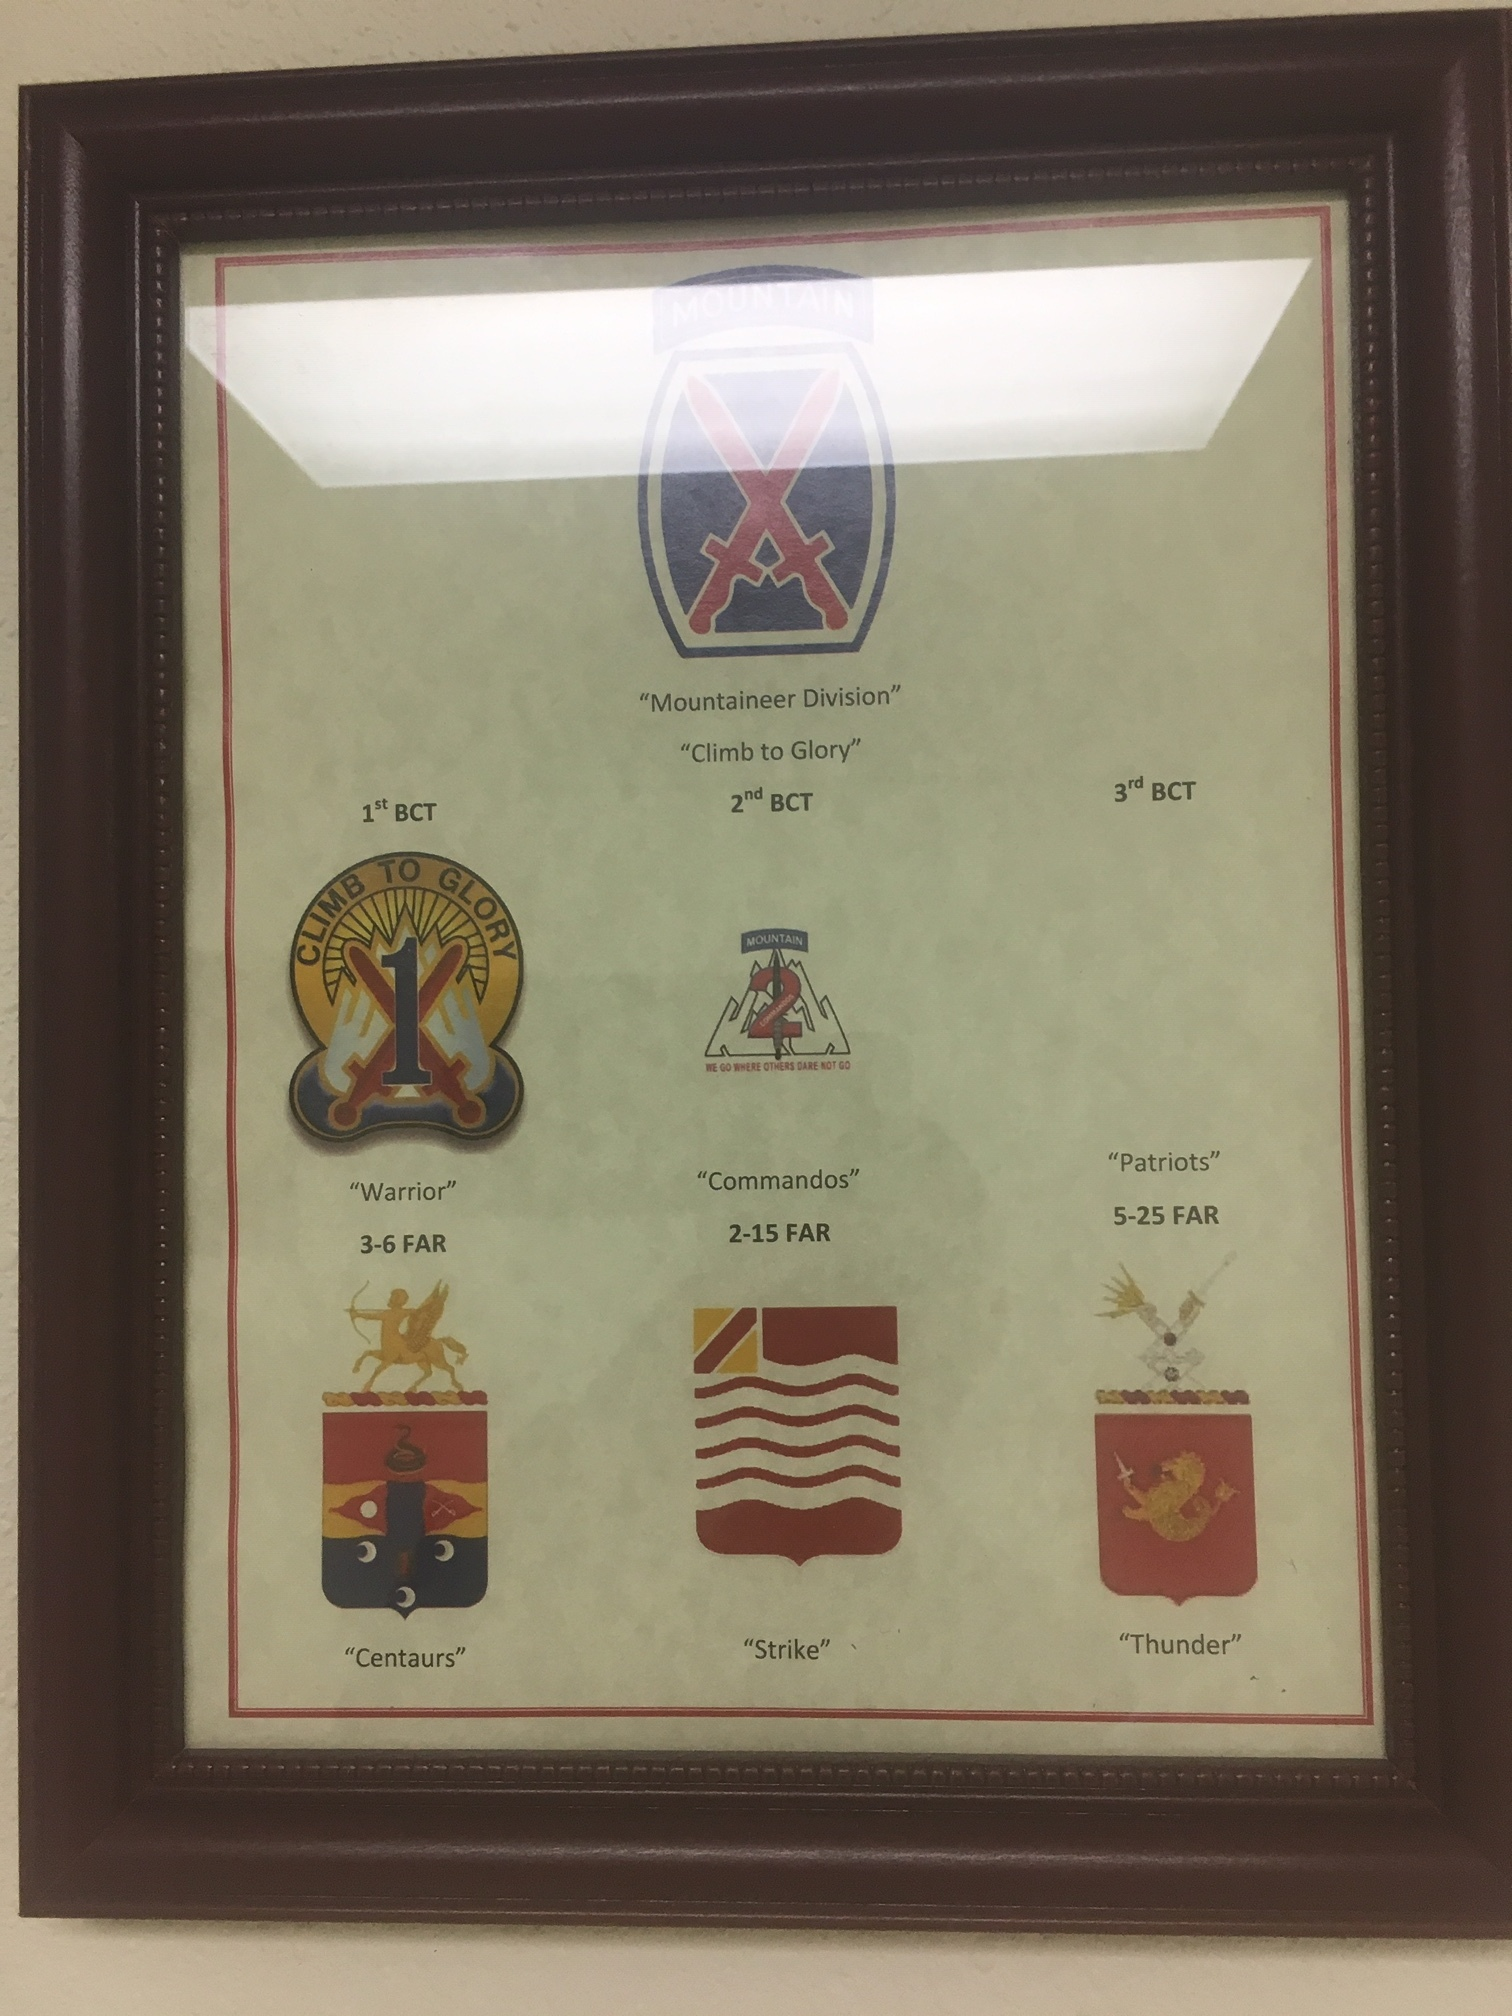 Picture in the hallways at FT Sill of 10th Mountain… my brigade Patriots logo is missing but at least we are the coolest looking artillery unit.